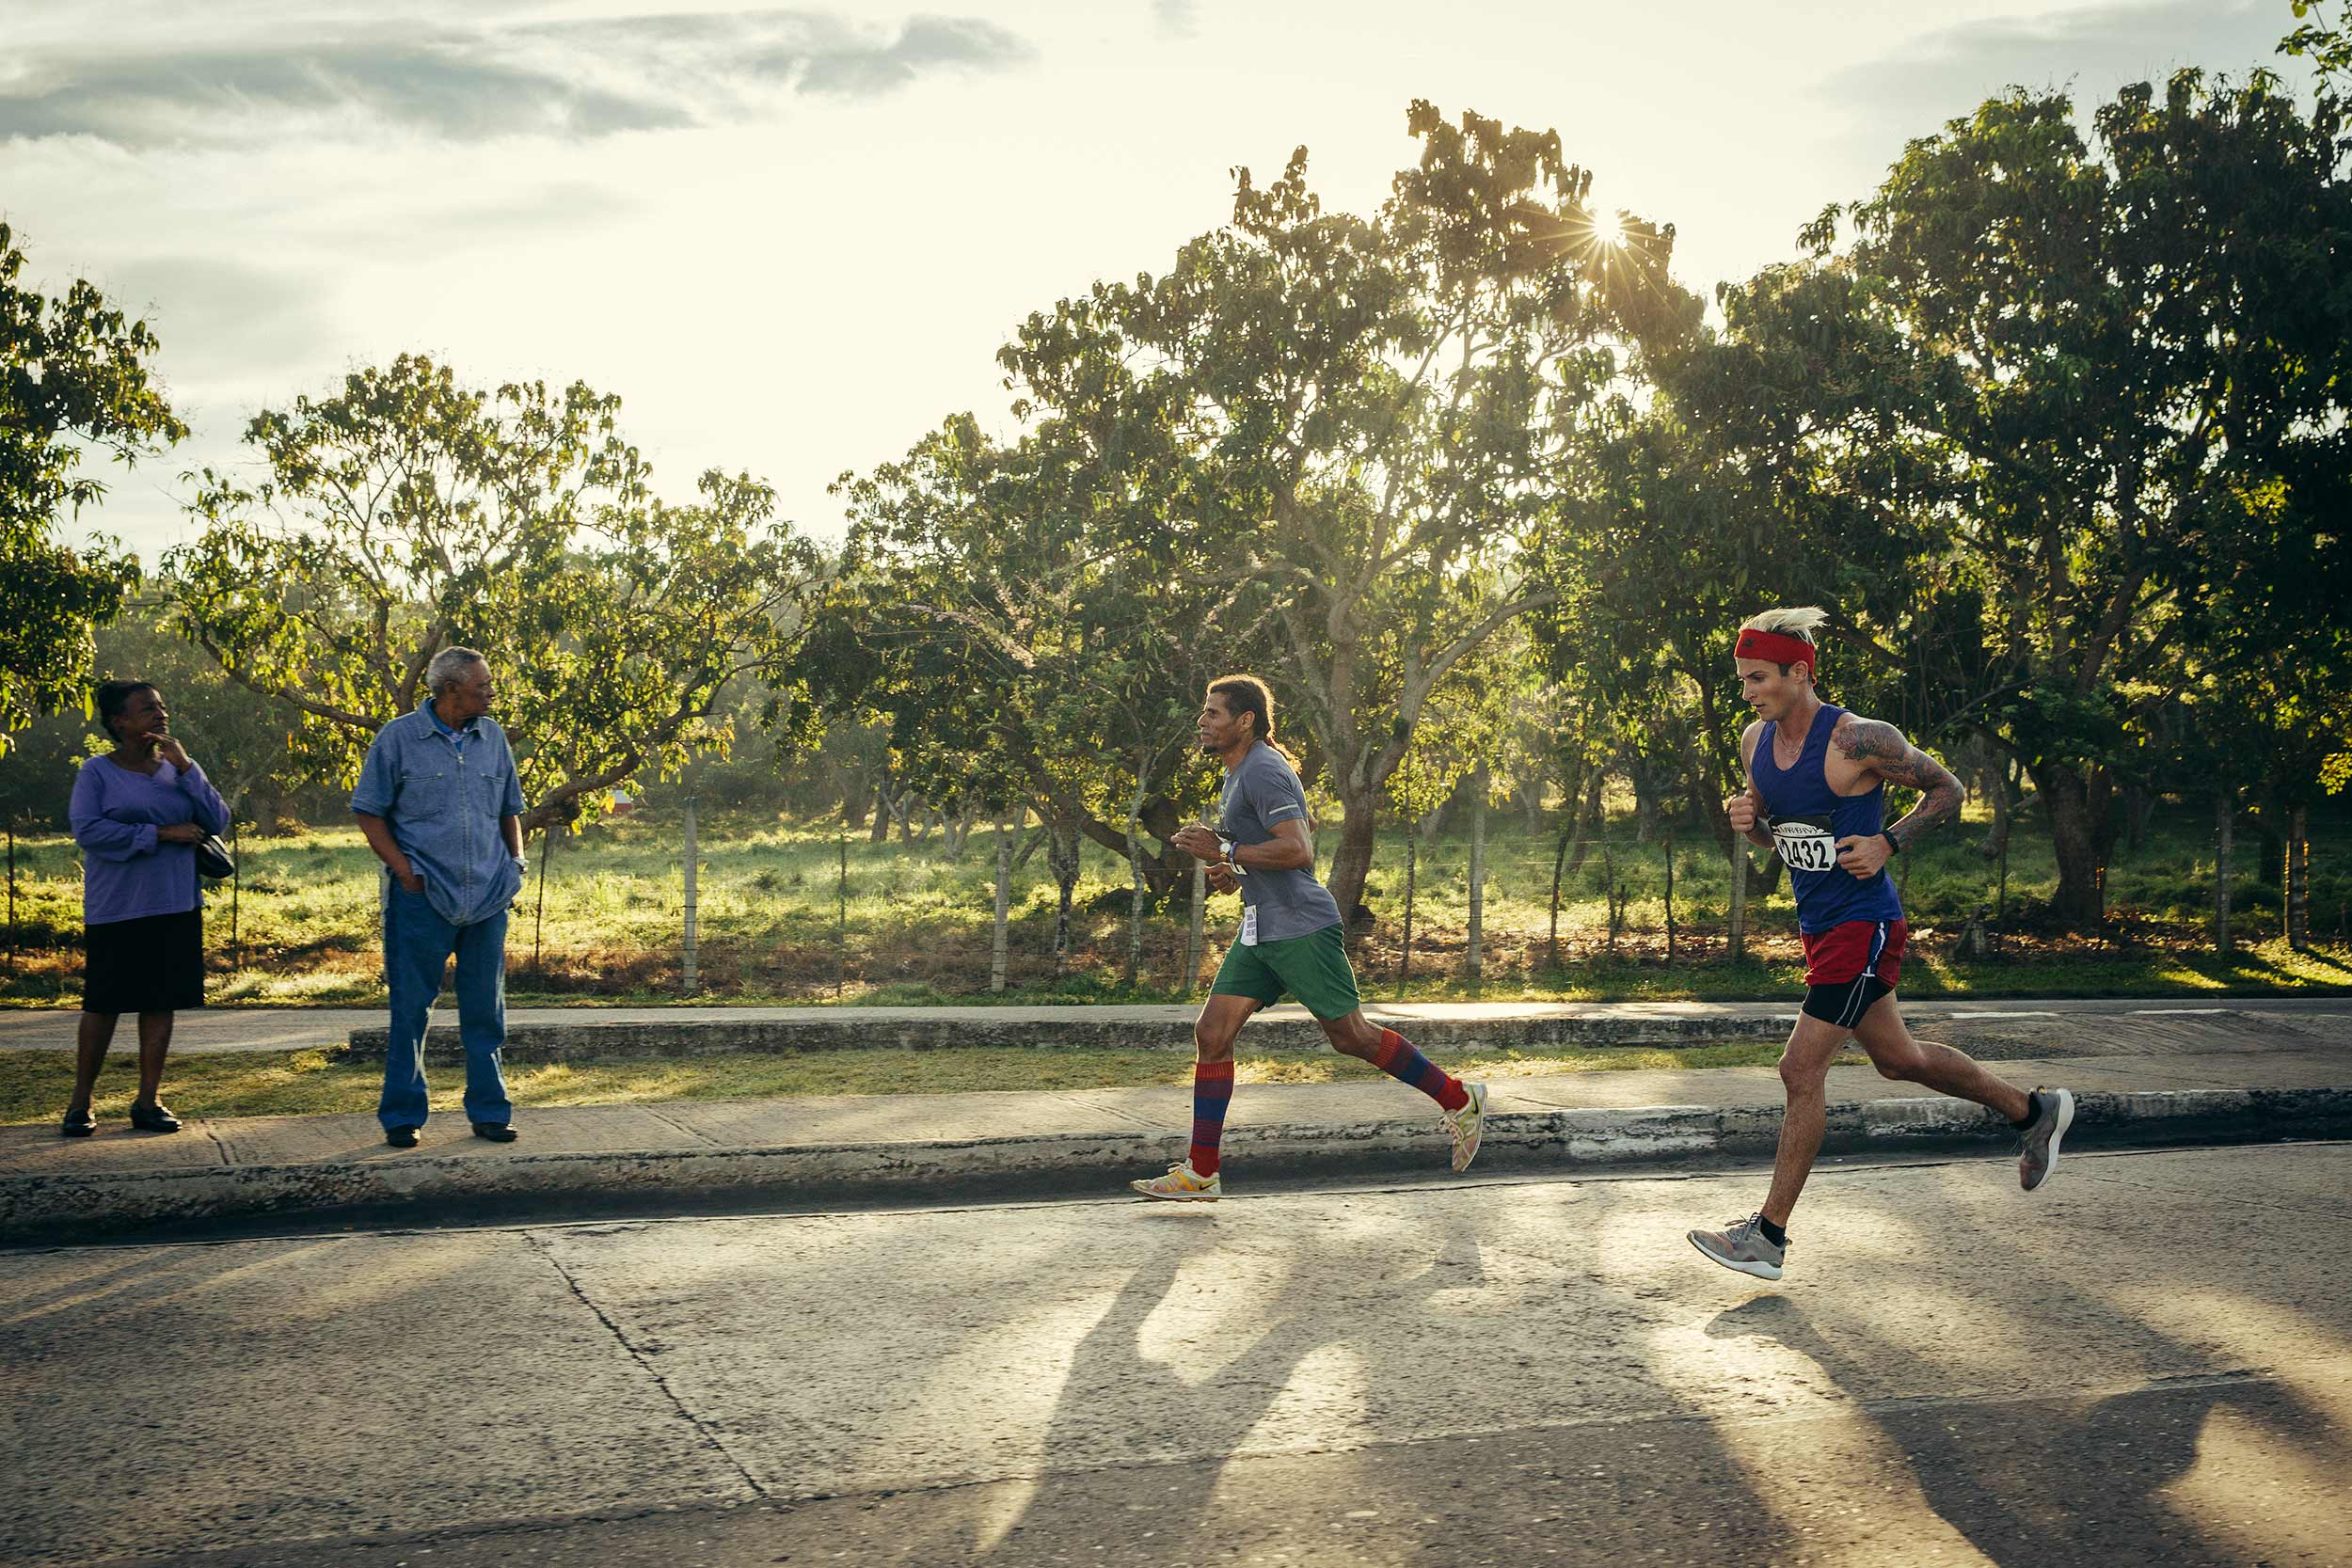 travel_photography_running_cuba_by_matt_stanley_02c